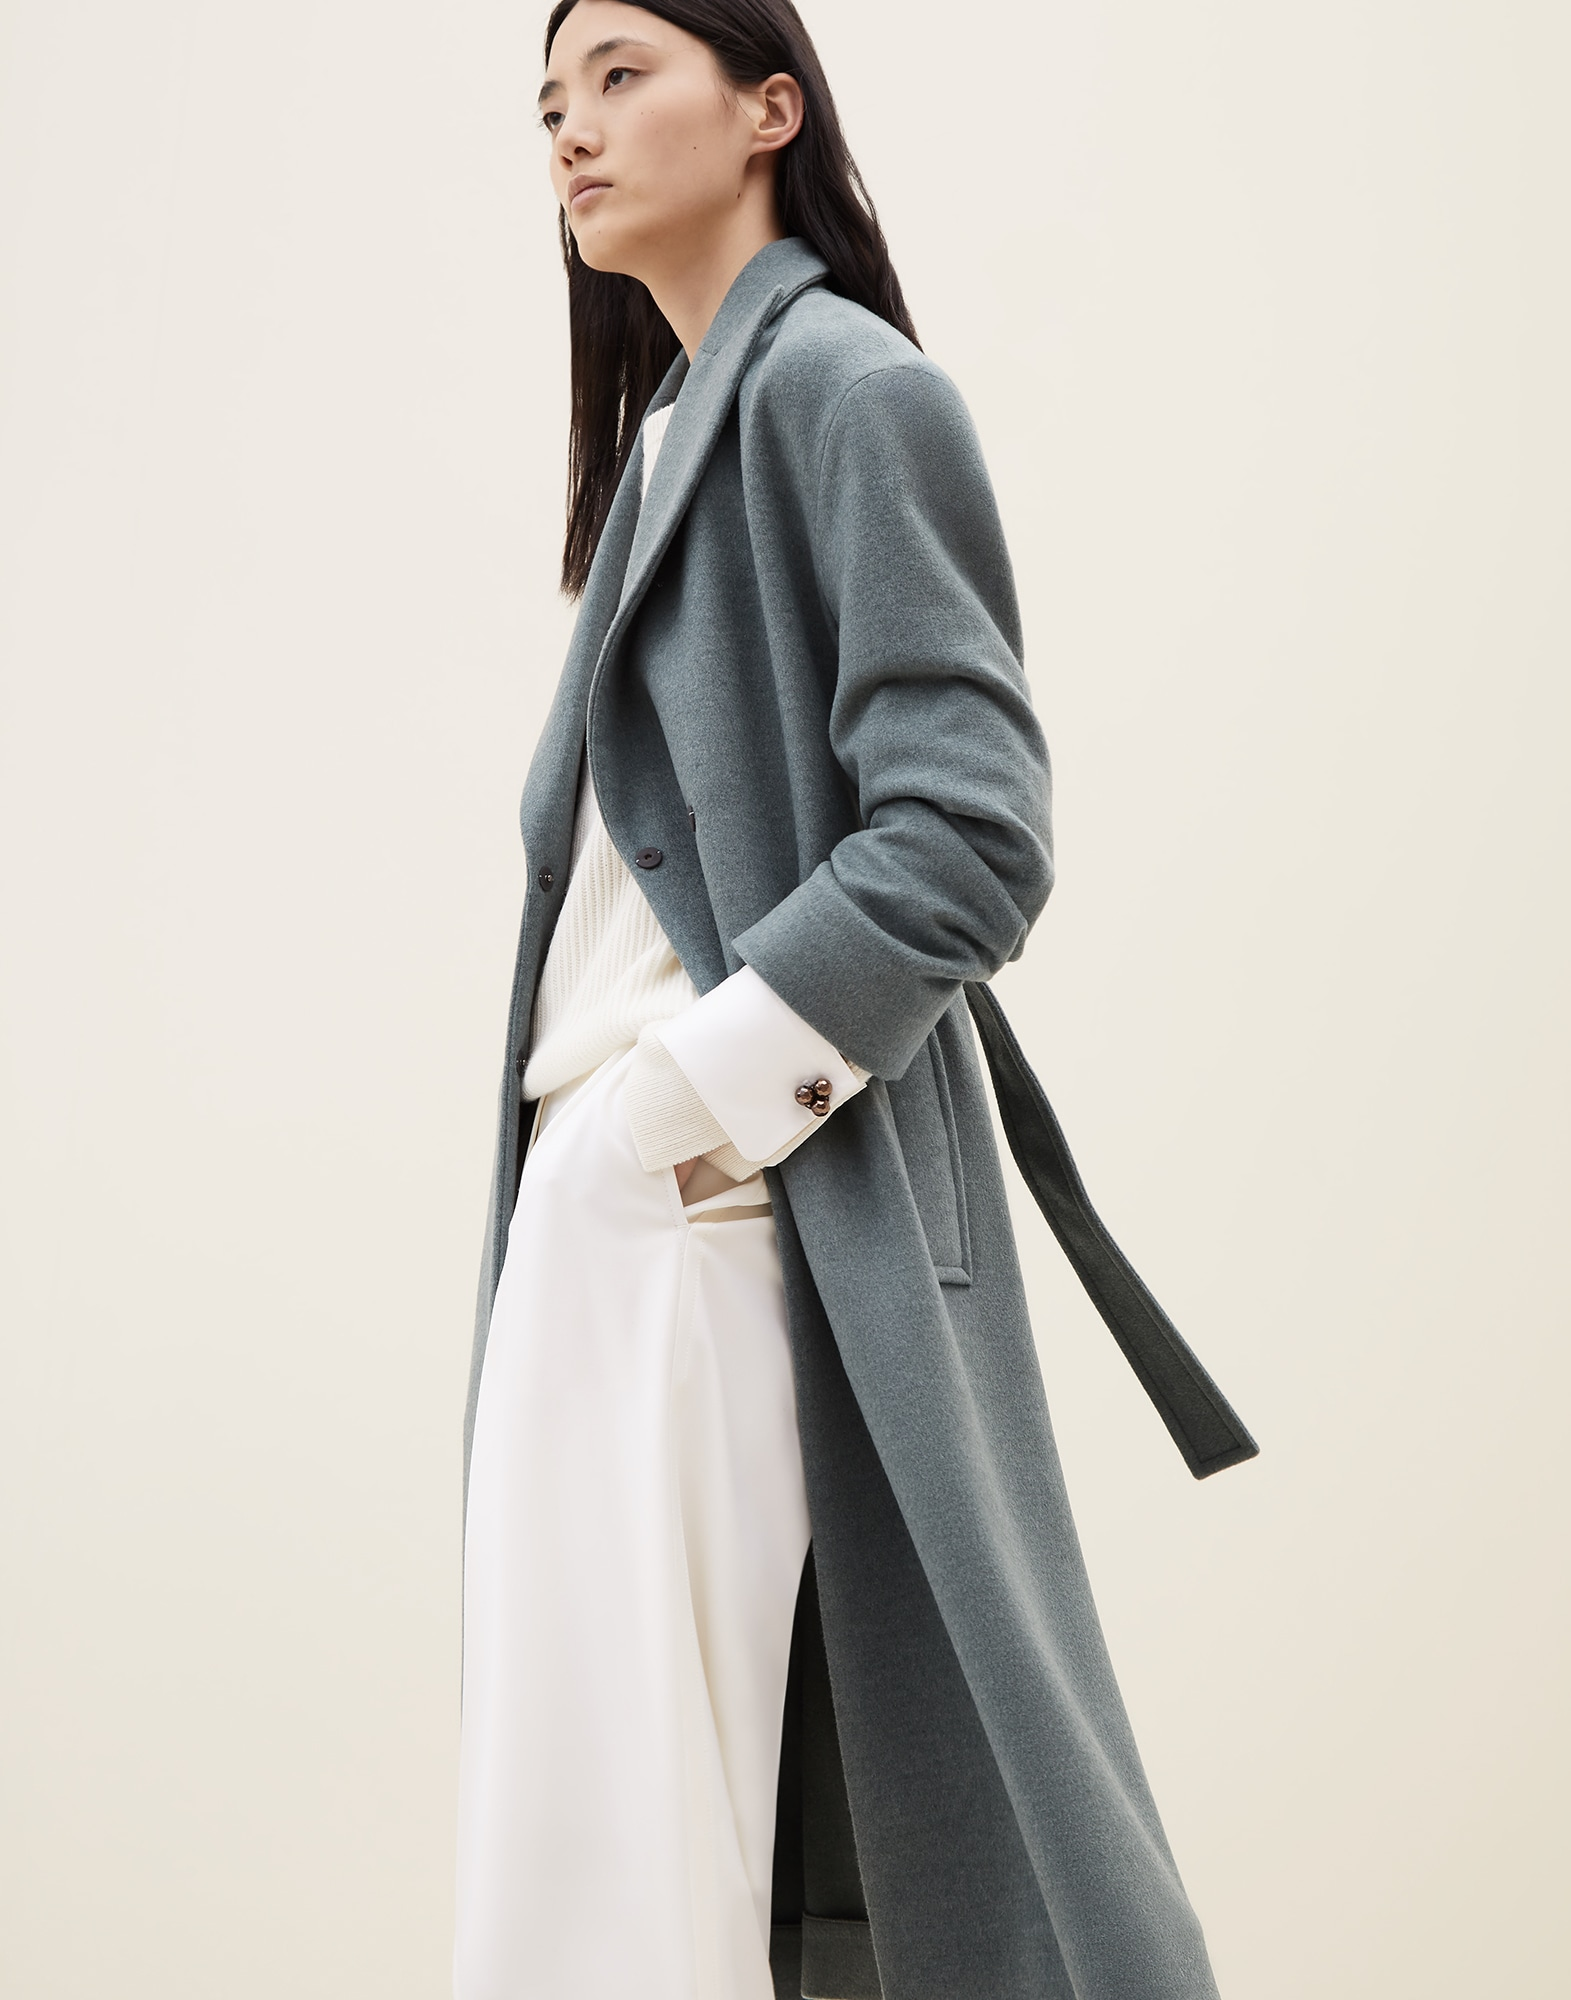 Women's Autumn-Winter 2019 Collection - Coats